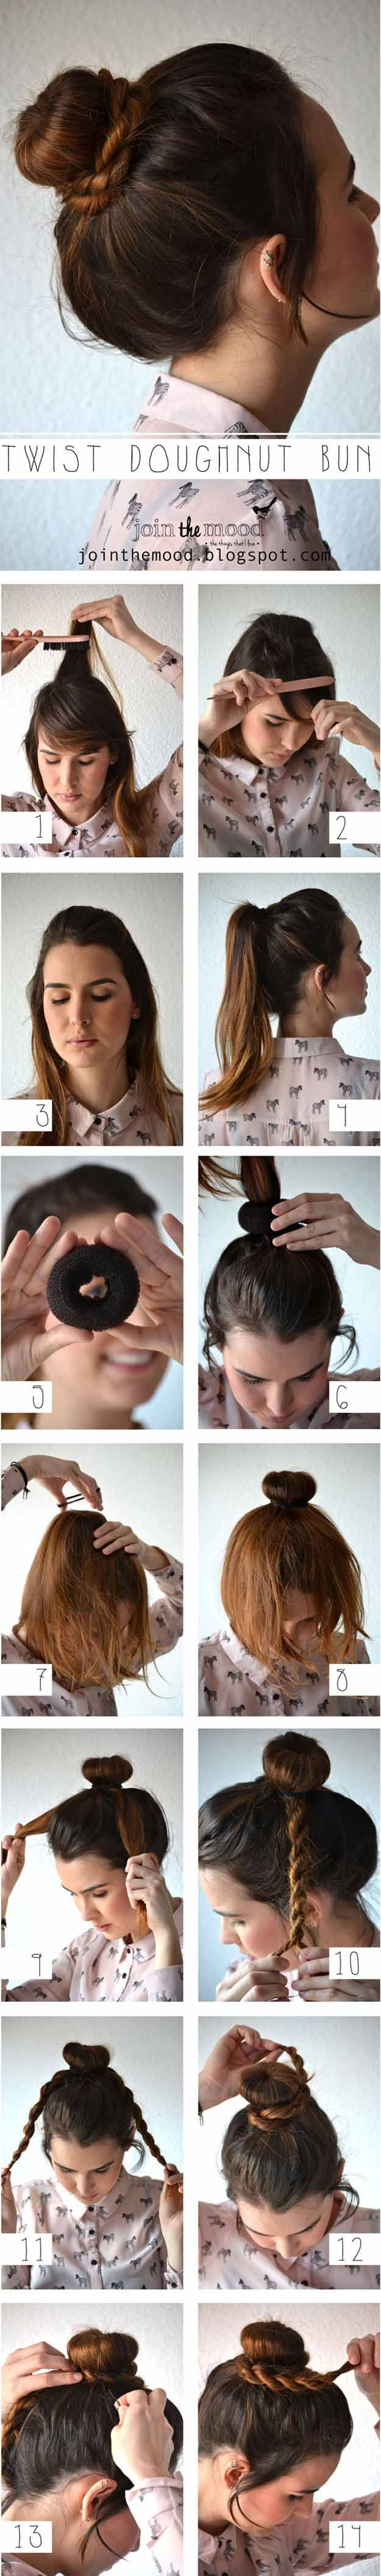 Best Hairstyles For Teens - Twist Doughnut Bun- Easy And Cute Haircuts And Hairstyles For Teens And Girls. Cute Ideas Like Braids And Tutorials And Tips For All Types Of Teen Hair From Short Hair To Medium Length Hair And Even Some Great Hair Styles For Long Hair. Super Cute Back To School Hairstyles And The Most Popular Looks For Summer and Fall. Try A Bob or A Half Up Half Down Style. Or Use The Simple Pony That Is Great For Prom, Gym Class, or Just After School. Back-To-School Cute…